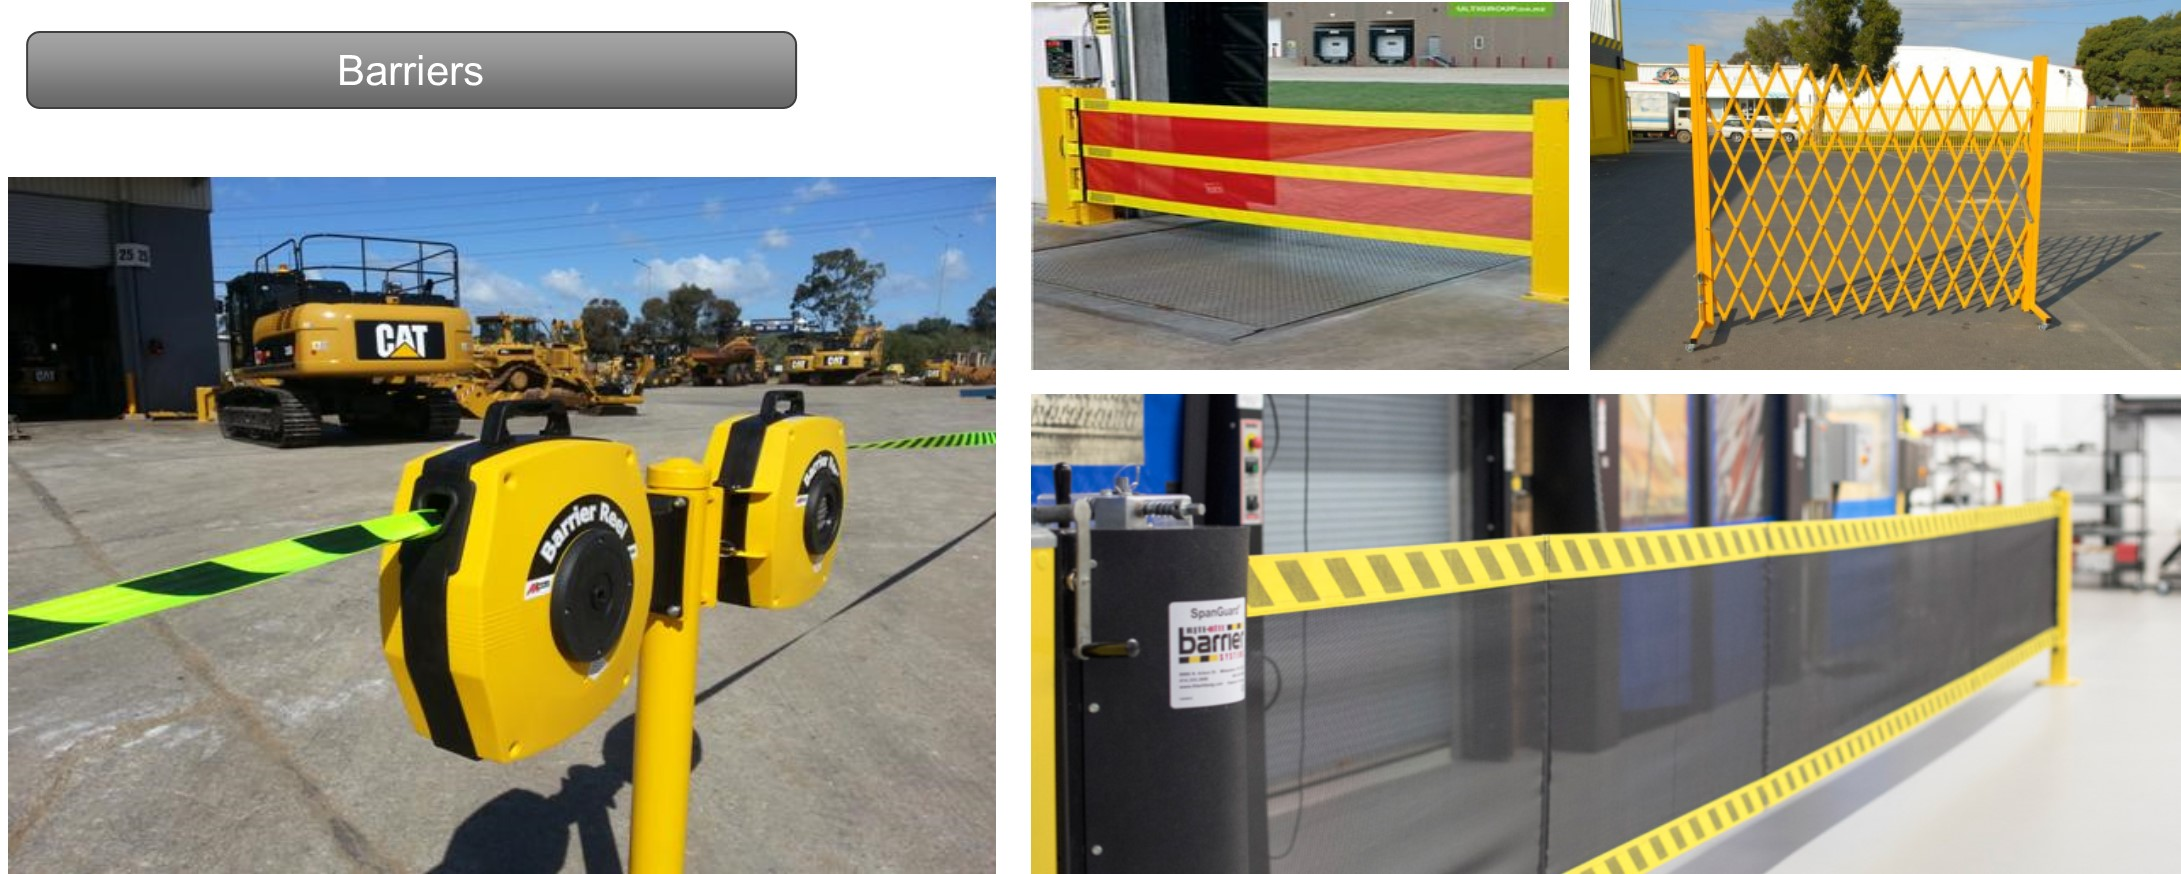 This picture demonstrates a range of barriers we have available for a range of scenarios. Barriers are a great way to restrict access to people in shopping centres or entertainment complexes